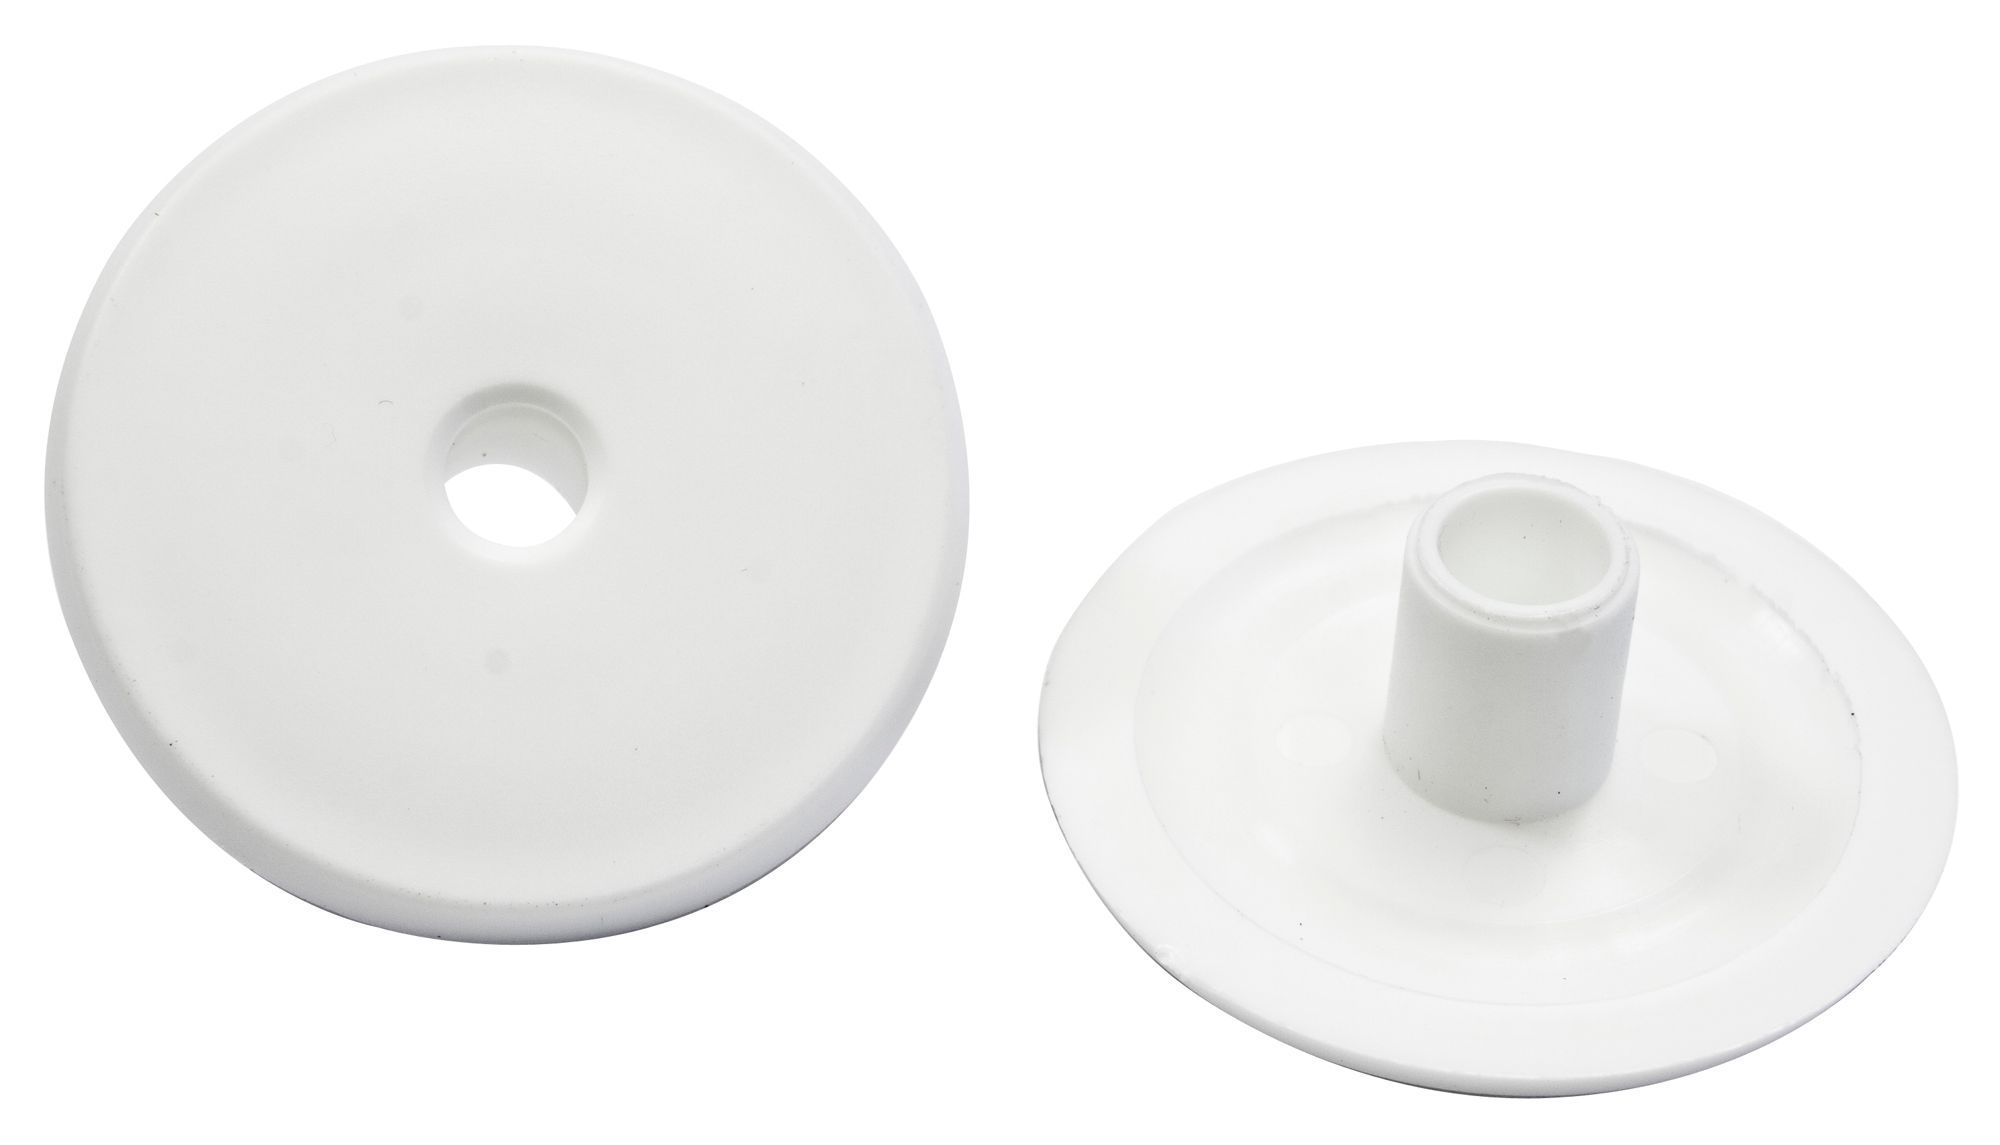 Bq Coax Hole Tidy Pack Of 2 Departments Diy At Junction Box Wiring